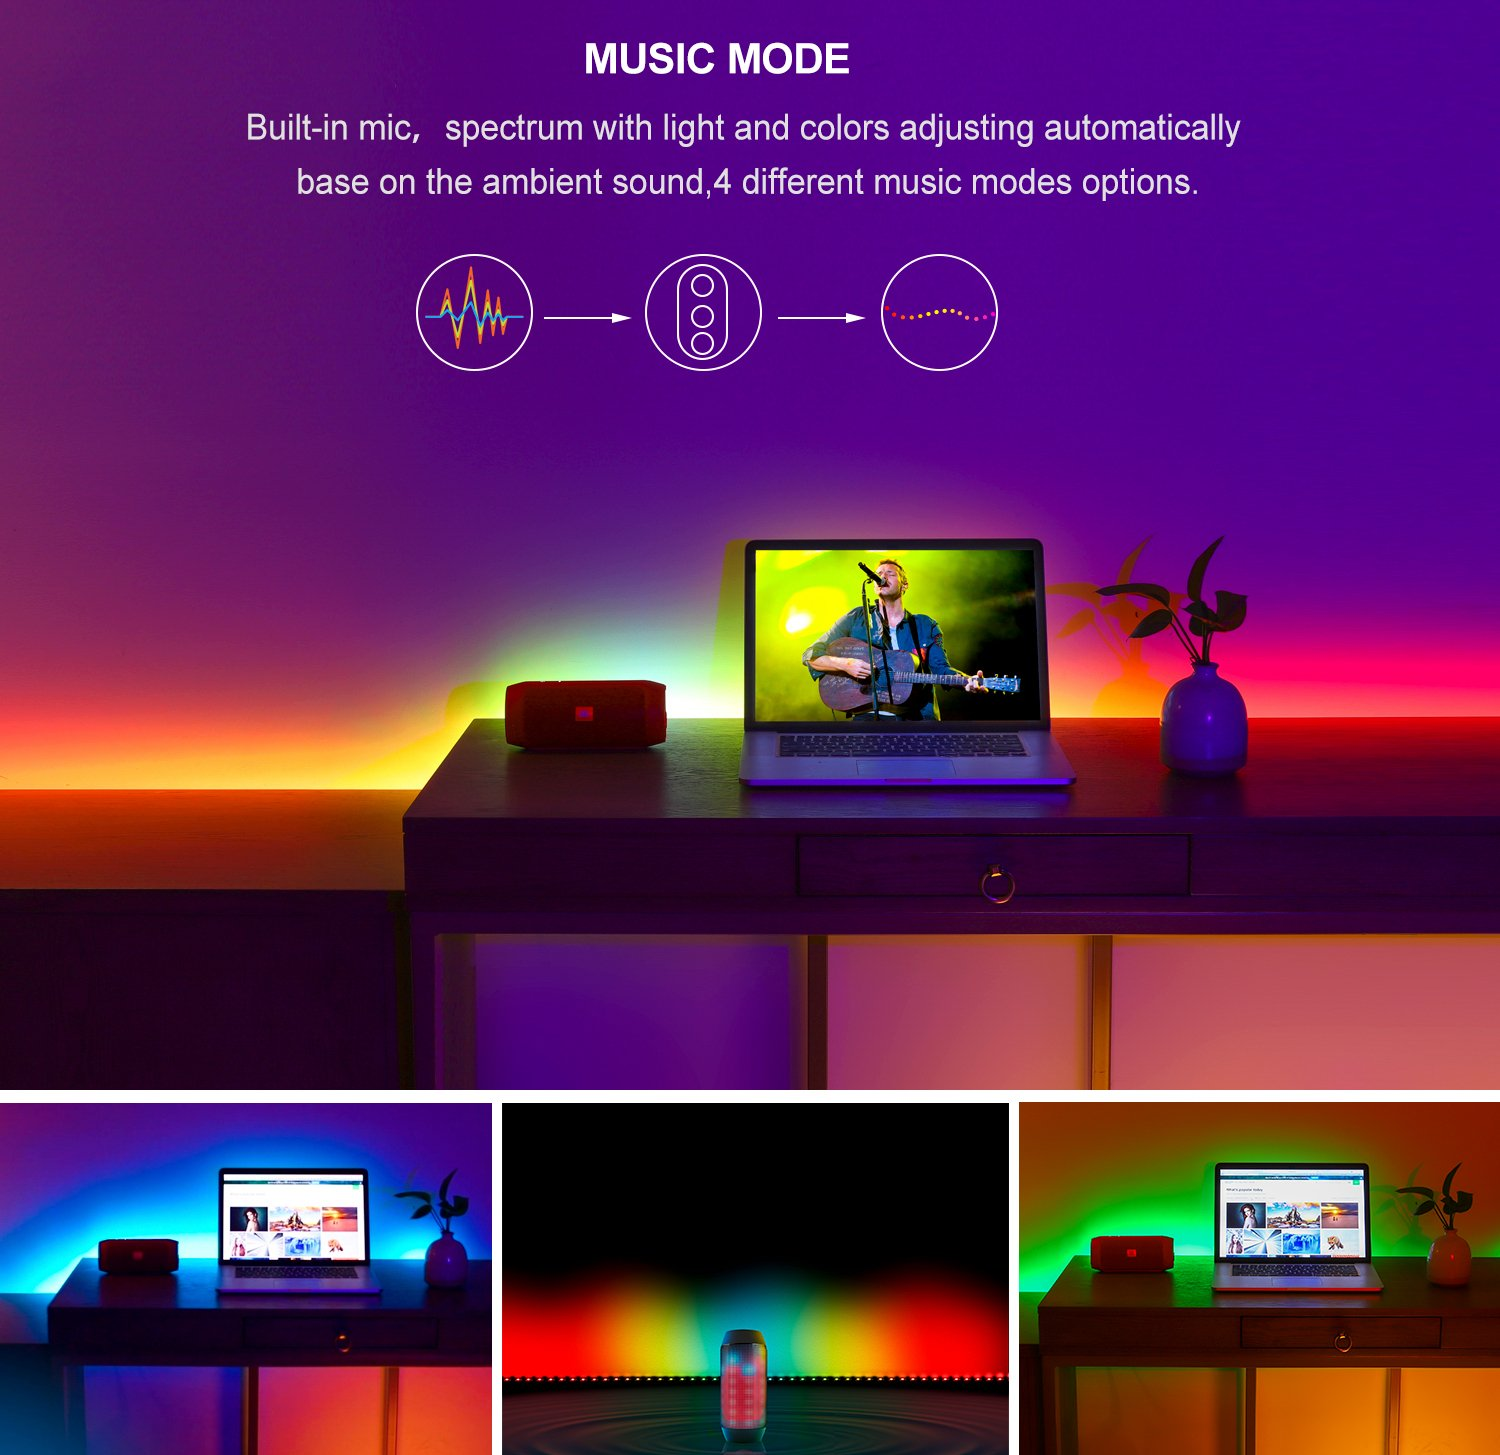 DreamColor LED Strip Lights with APP, Minger 6.6FT/2M 5V USB Light Strip Built-in Digital IC, 5050 RGB Light Color Changing with Music IP65 Waterproof Led String Lights Kit, LED TV Backlight Strip by MINGER (Image #4)